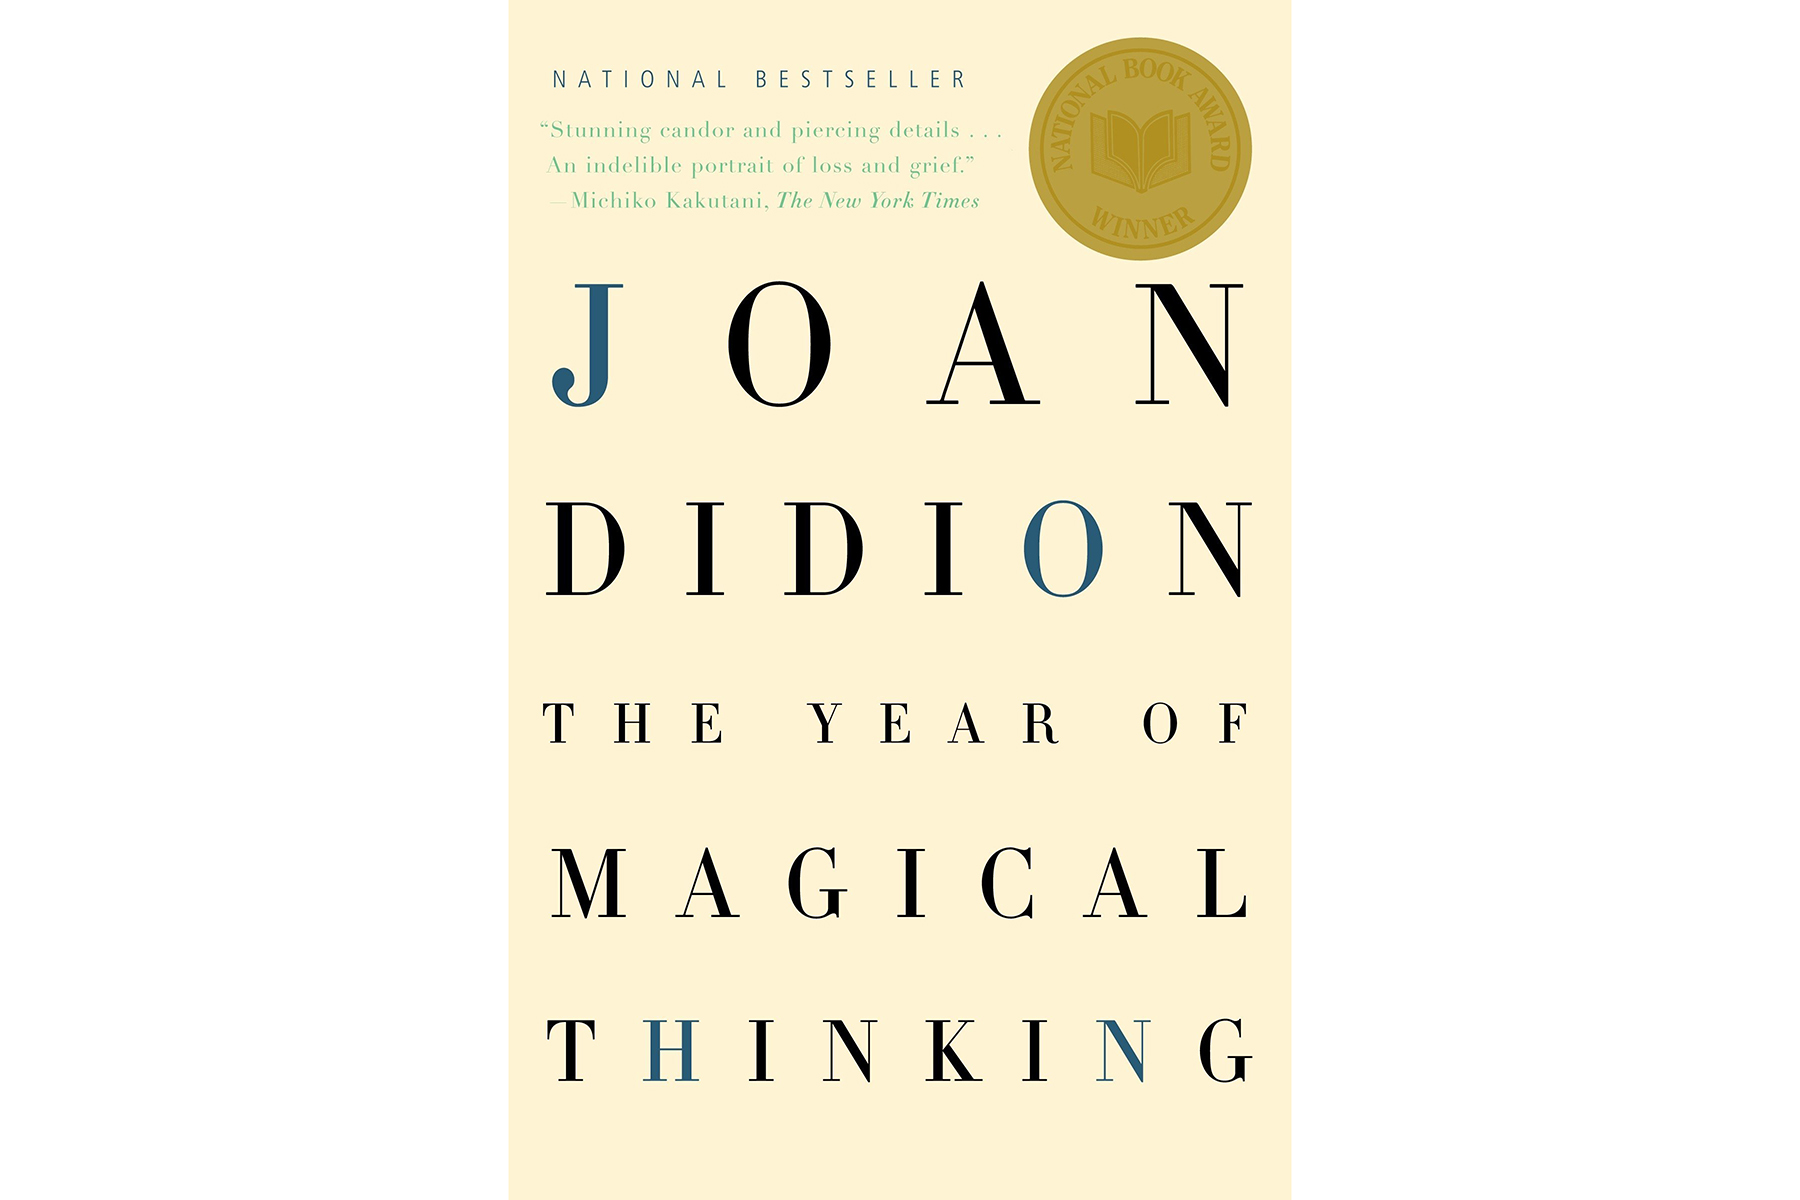 Cover of The Year of Magical Thinking, by Joan Didion